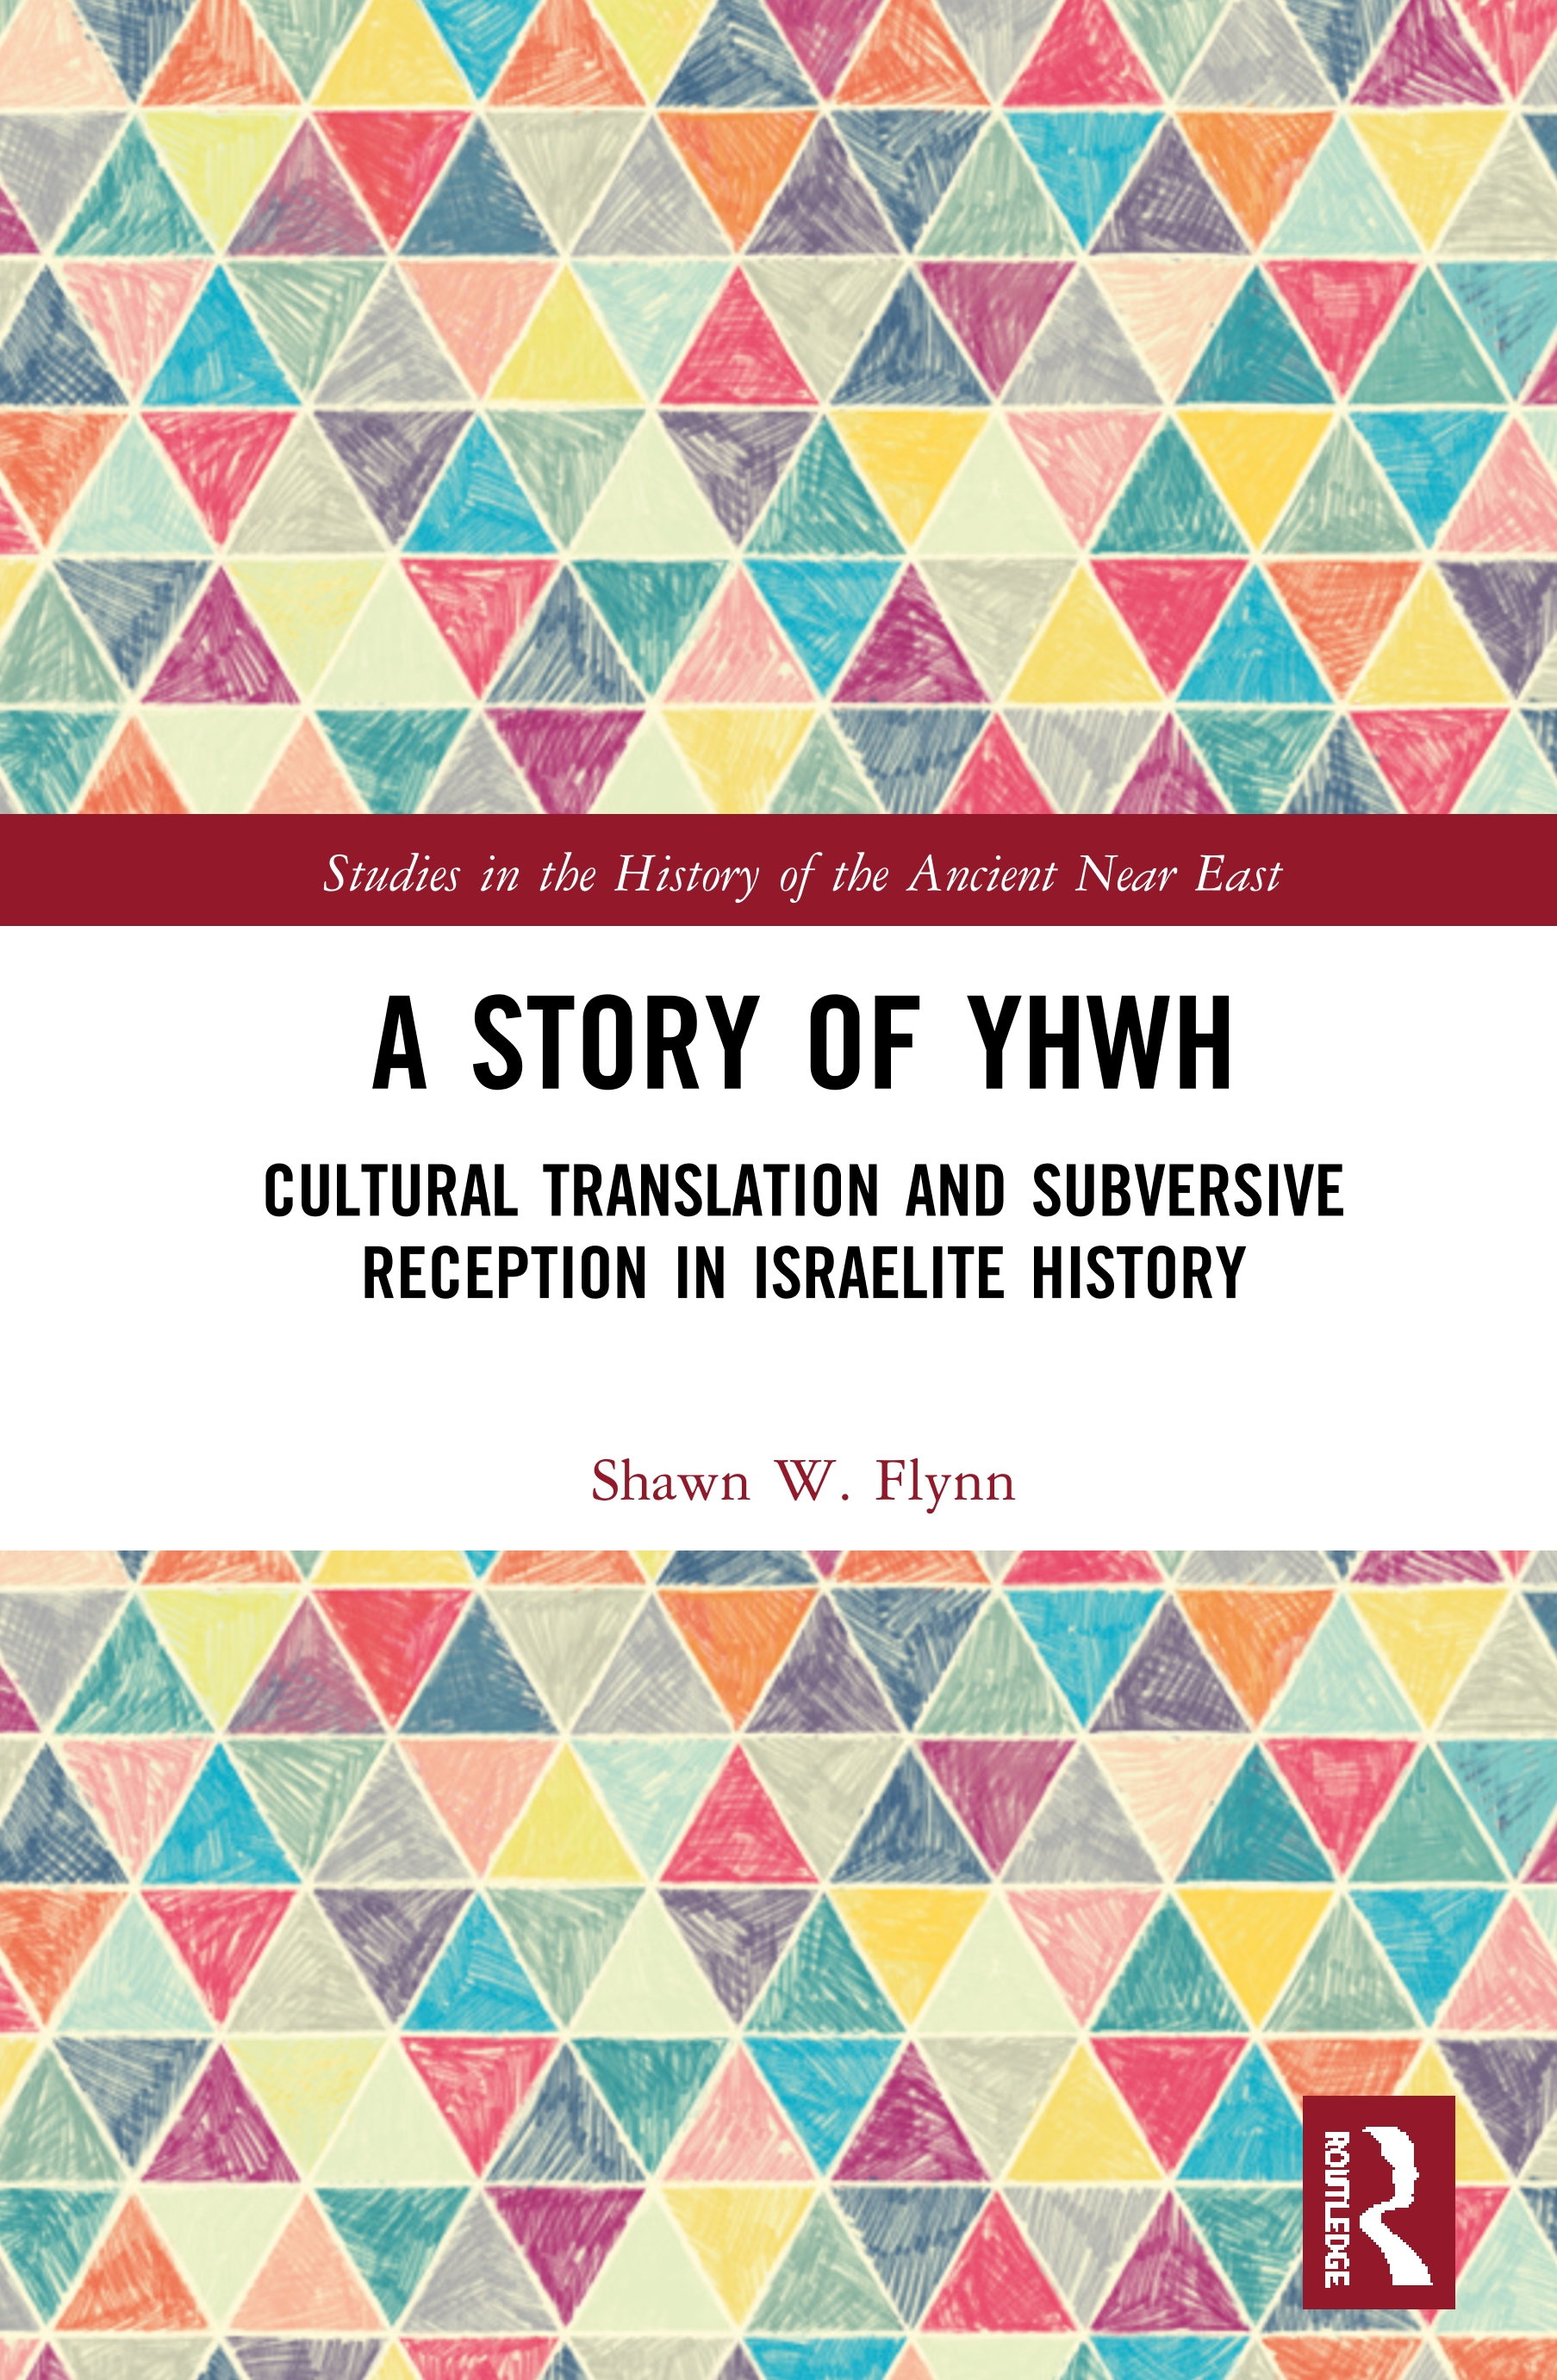 A Story of YHWH: Cultural Translation and Subversive Reception in Israelite History book cover